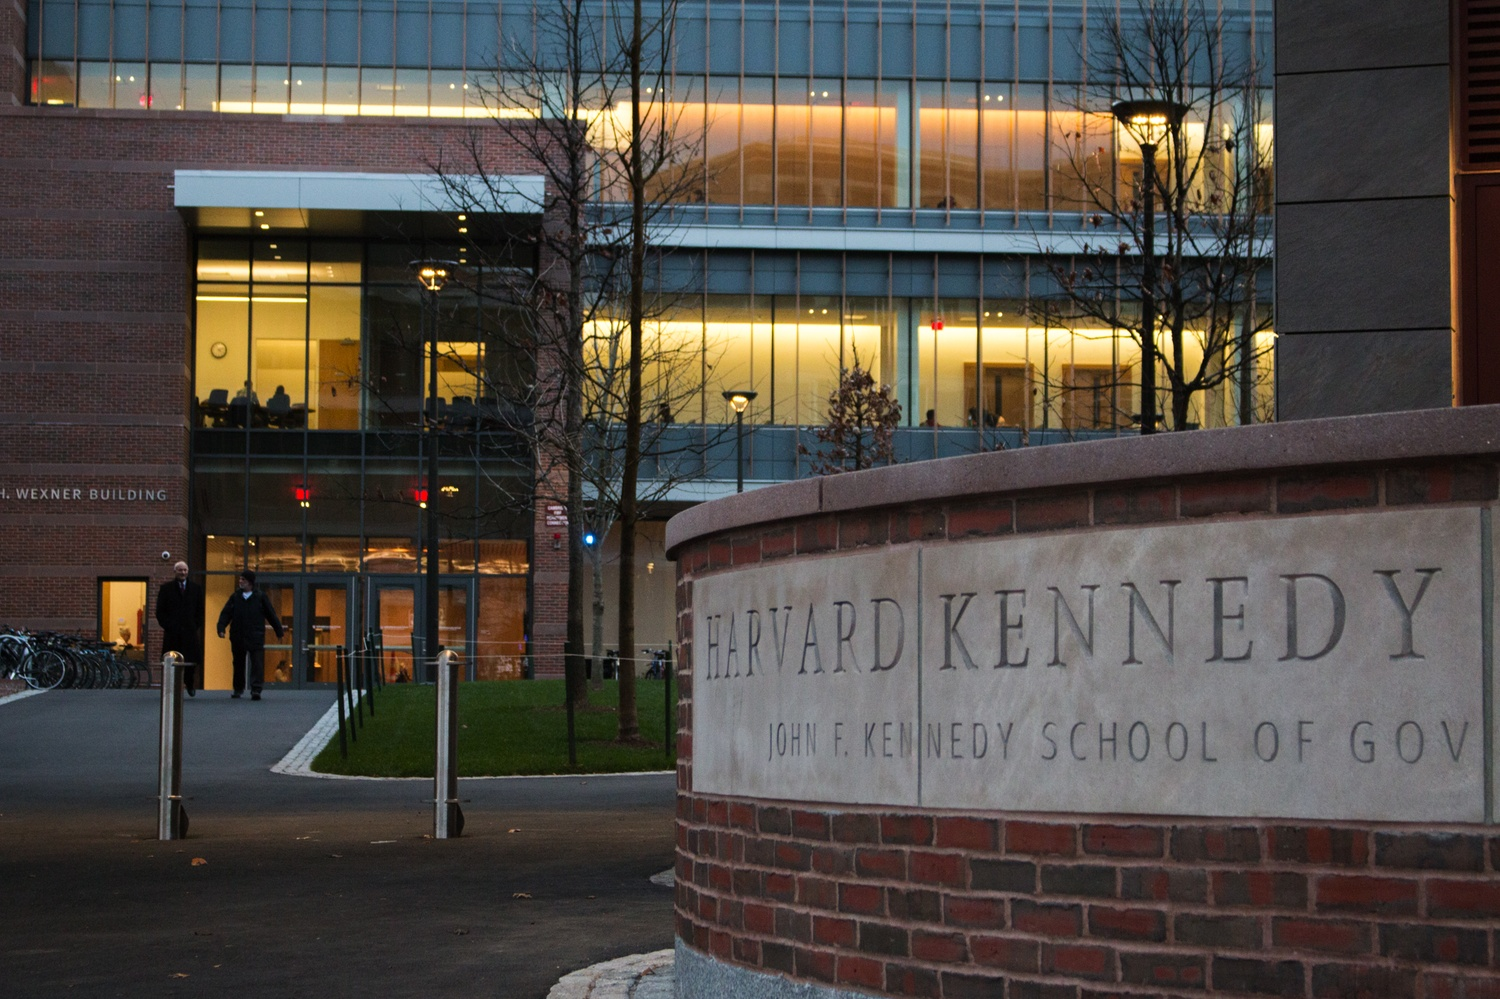 The Harvard Kennedy School, pictured in 2017.